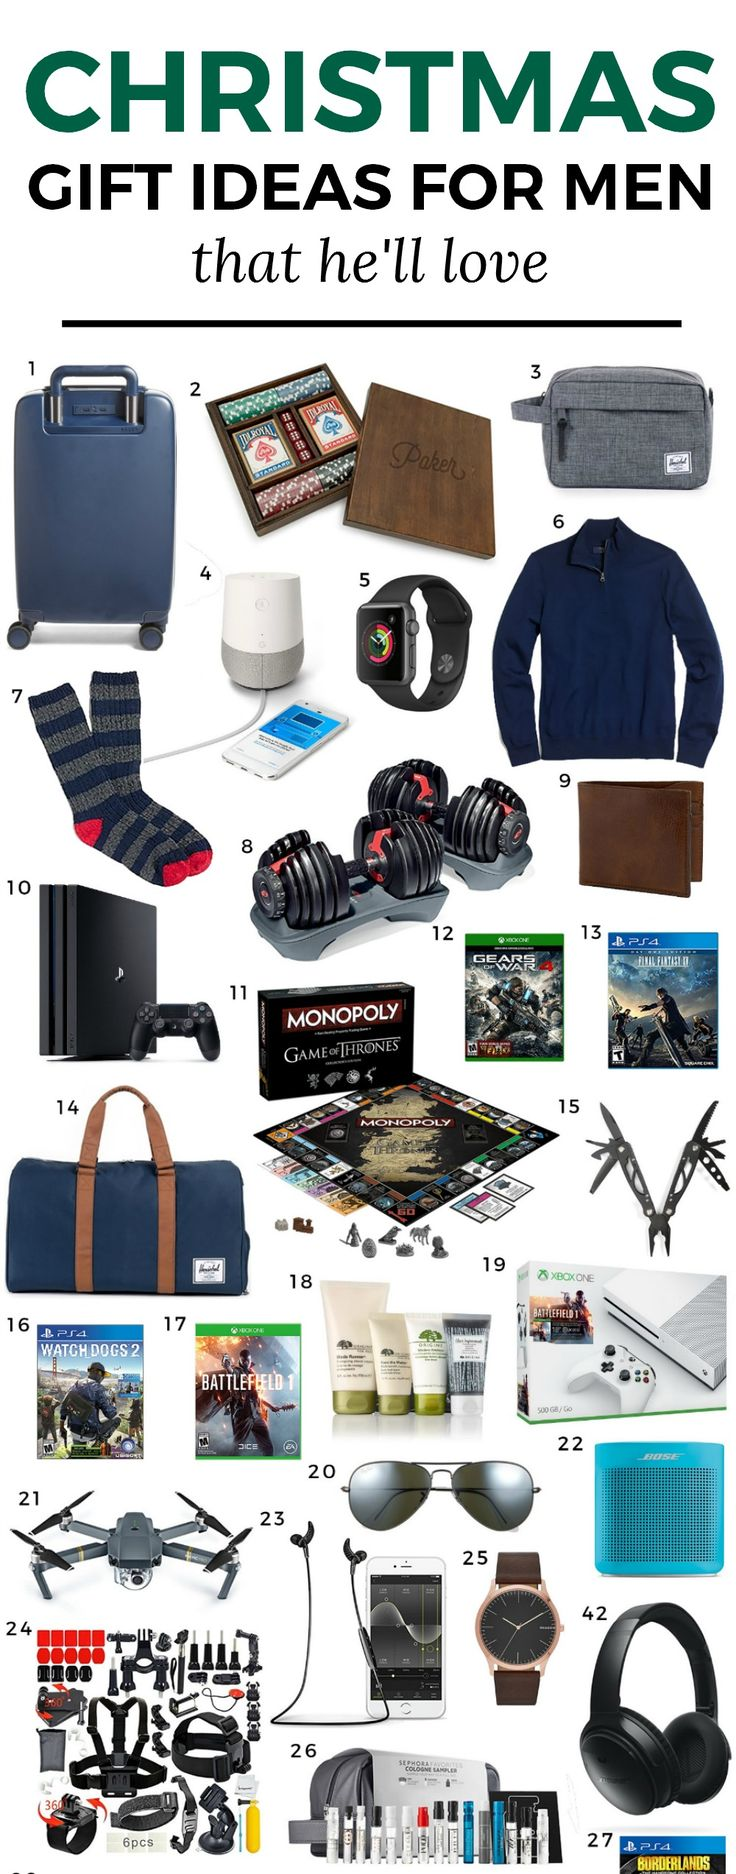 41 best Gifts, indulgences, desires with an ecotwist images on ...